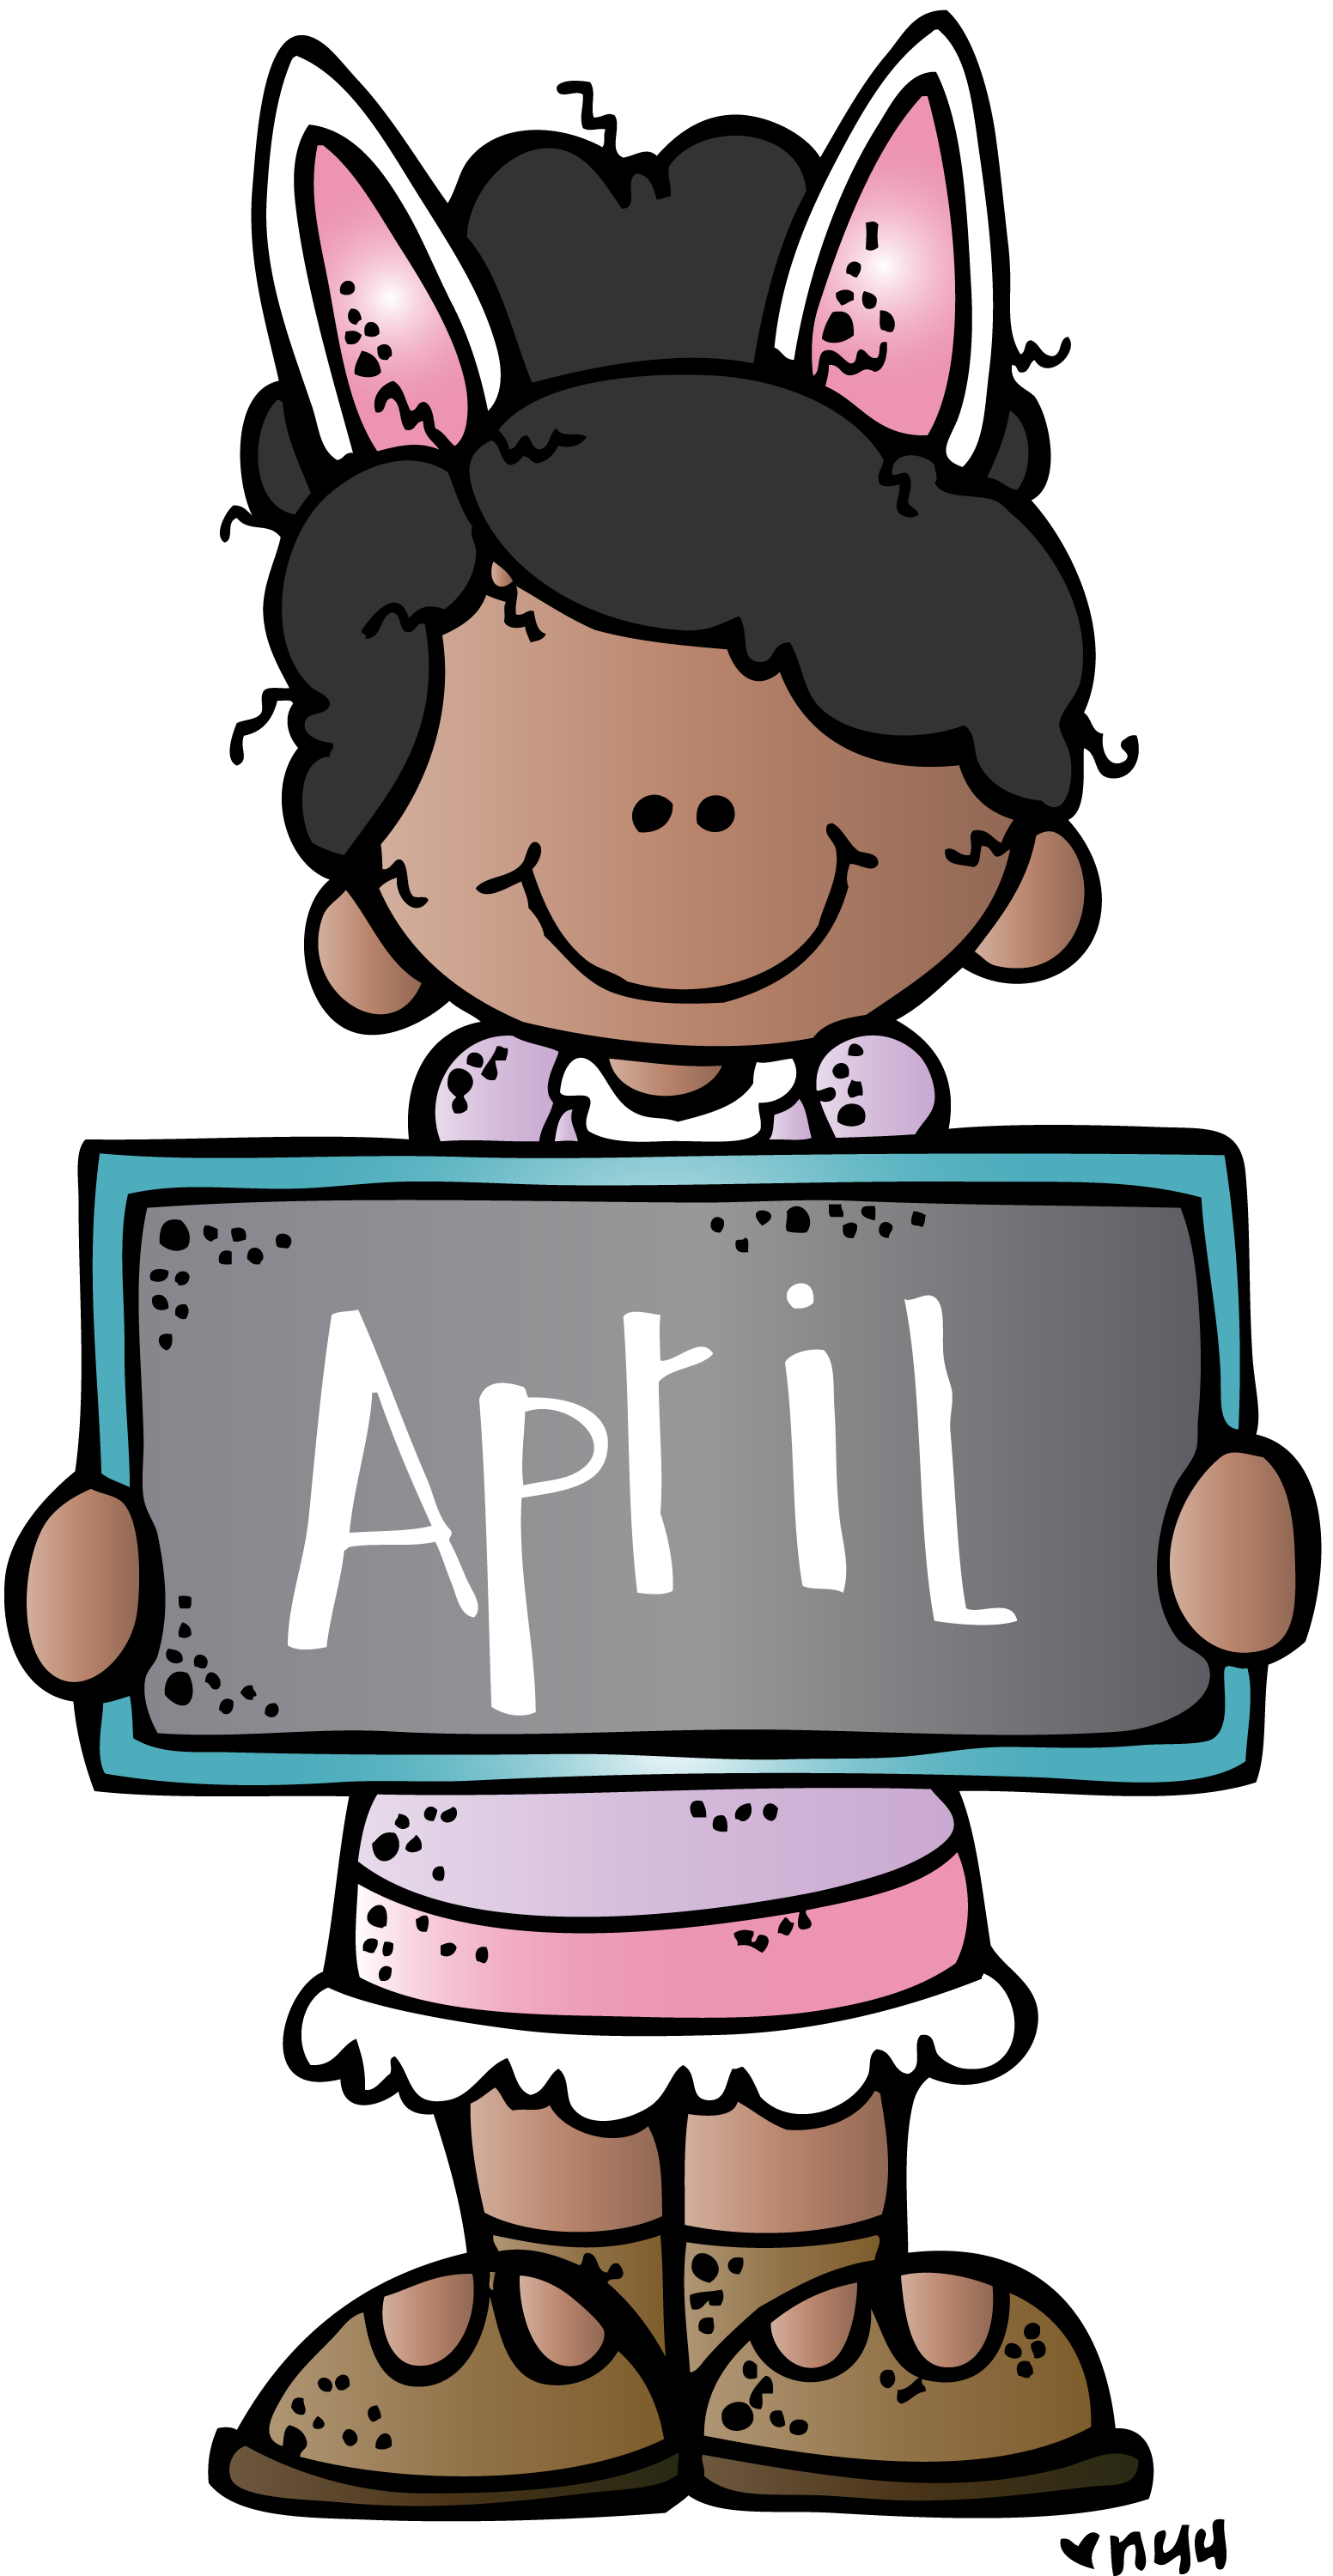 April clipart school. Mkb c melonheadz teaching